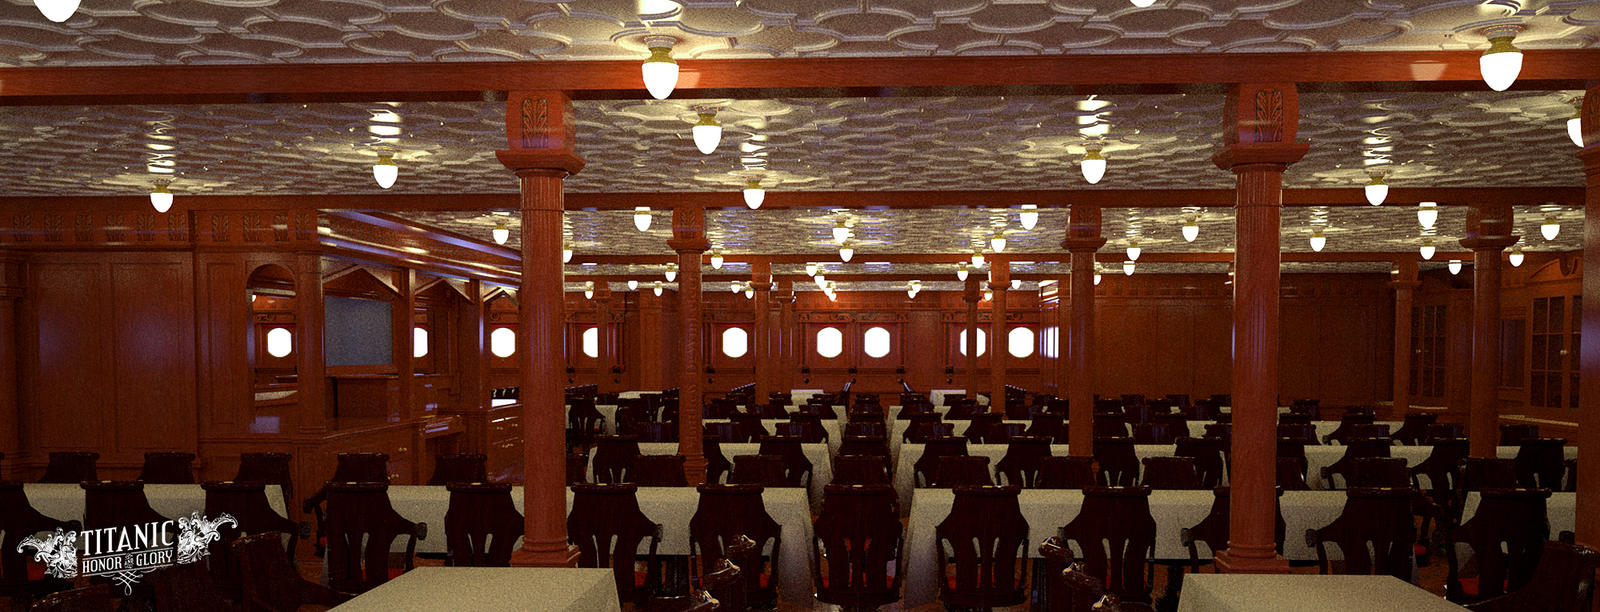 Titanicu0027s Second Class Dining Saloon By TitanicHonorAndGlory Titanicu0027s  Second Class Dining Saloon By TitanicHonorAndGlory Part 19